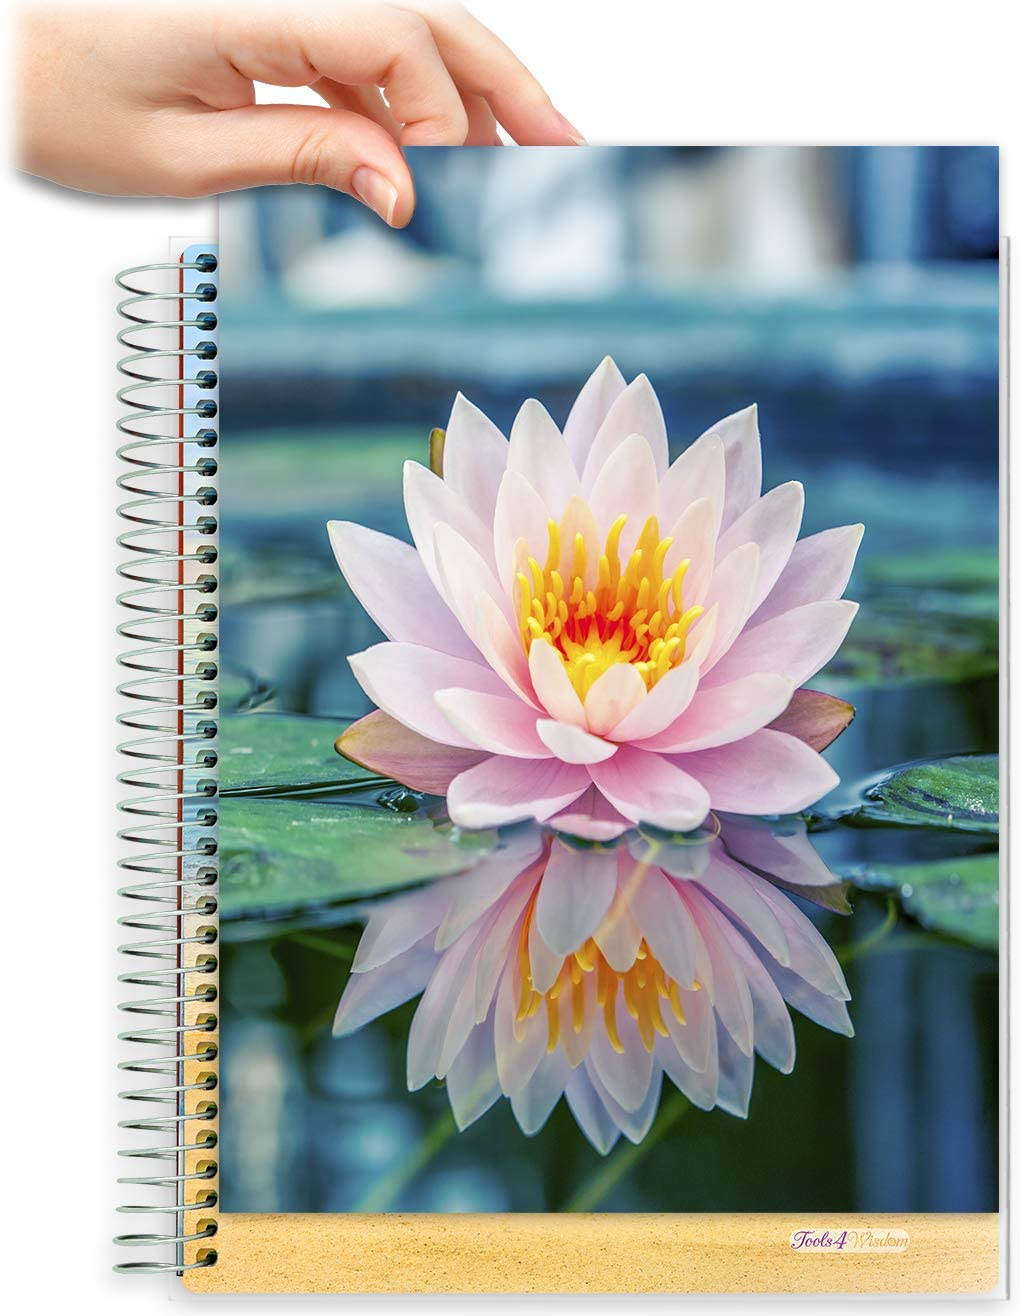 8.5x11 Customizable Softcover Planner • April 2021 to June 2022 Academic Year • Pink Lotus